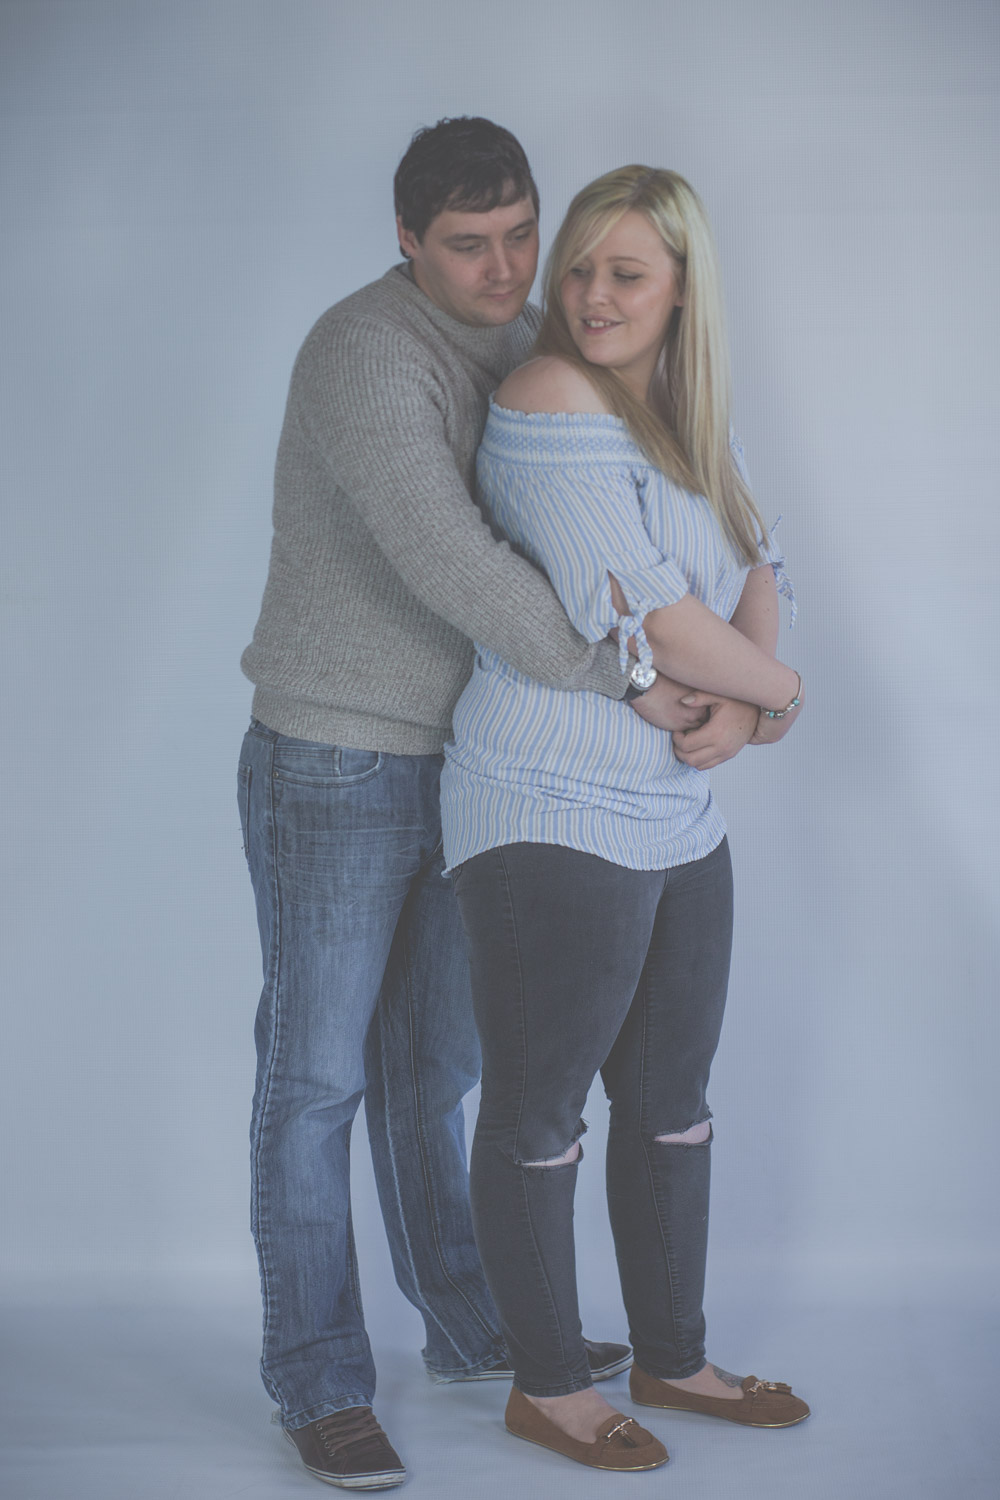 family-baby-portraits-photographer-in-keighley-bradford-leeds-7